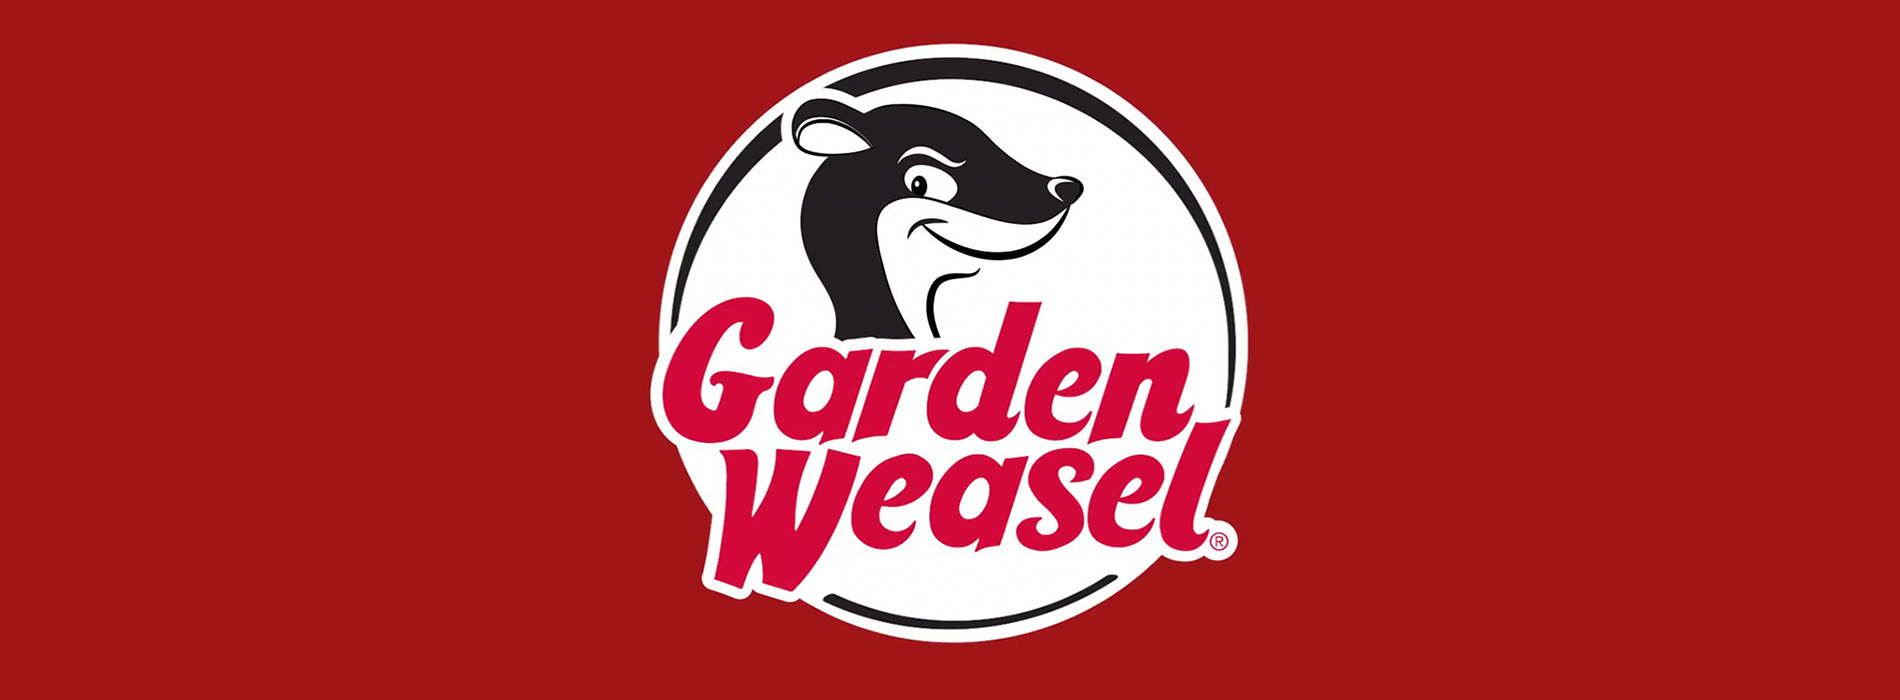 Play Video: Garden Weasel